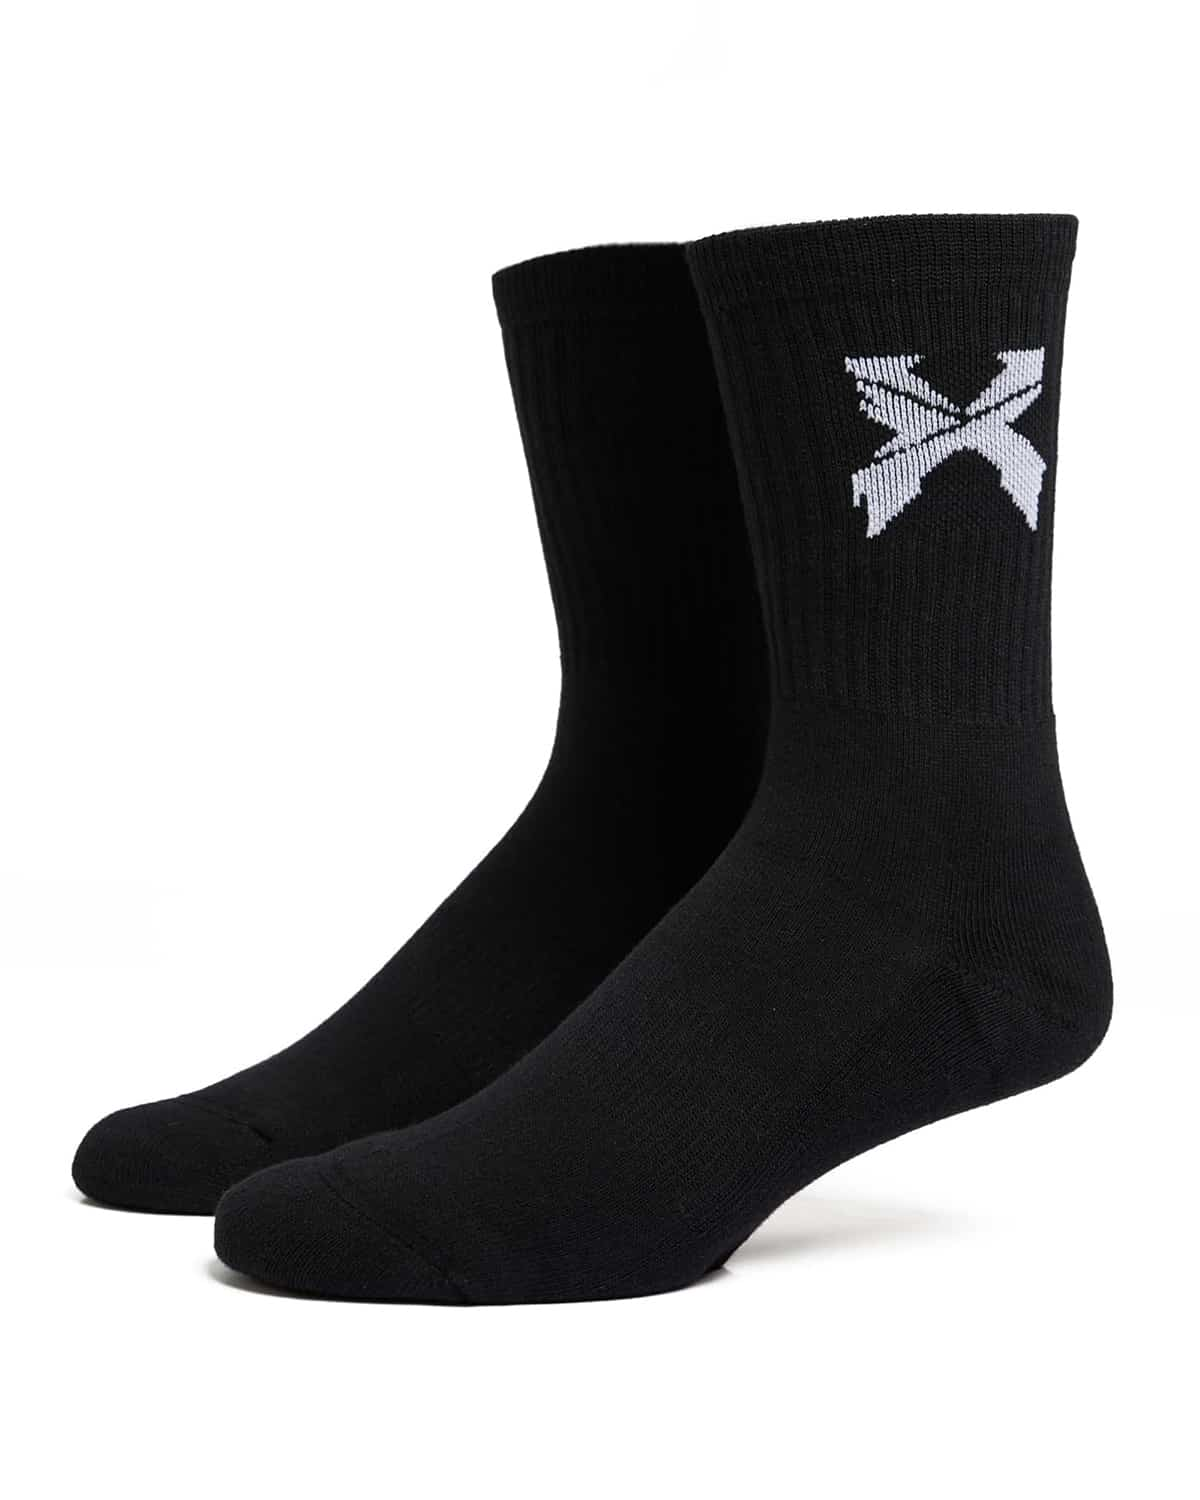 Excision 'Sliced' Logo Socks - Black